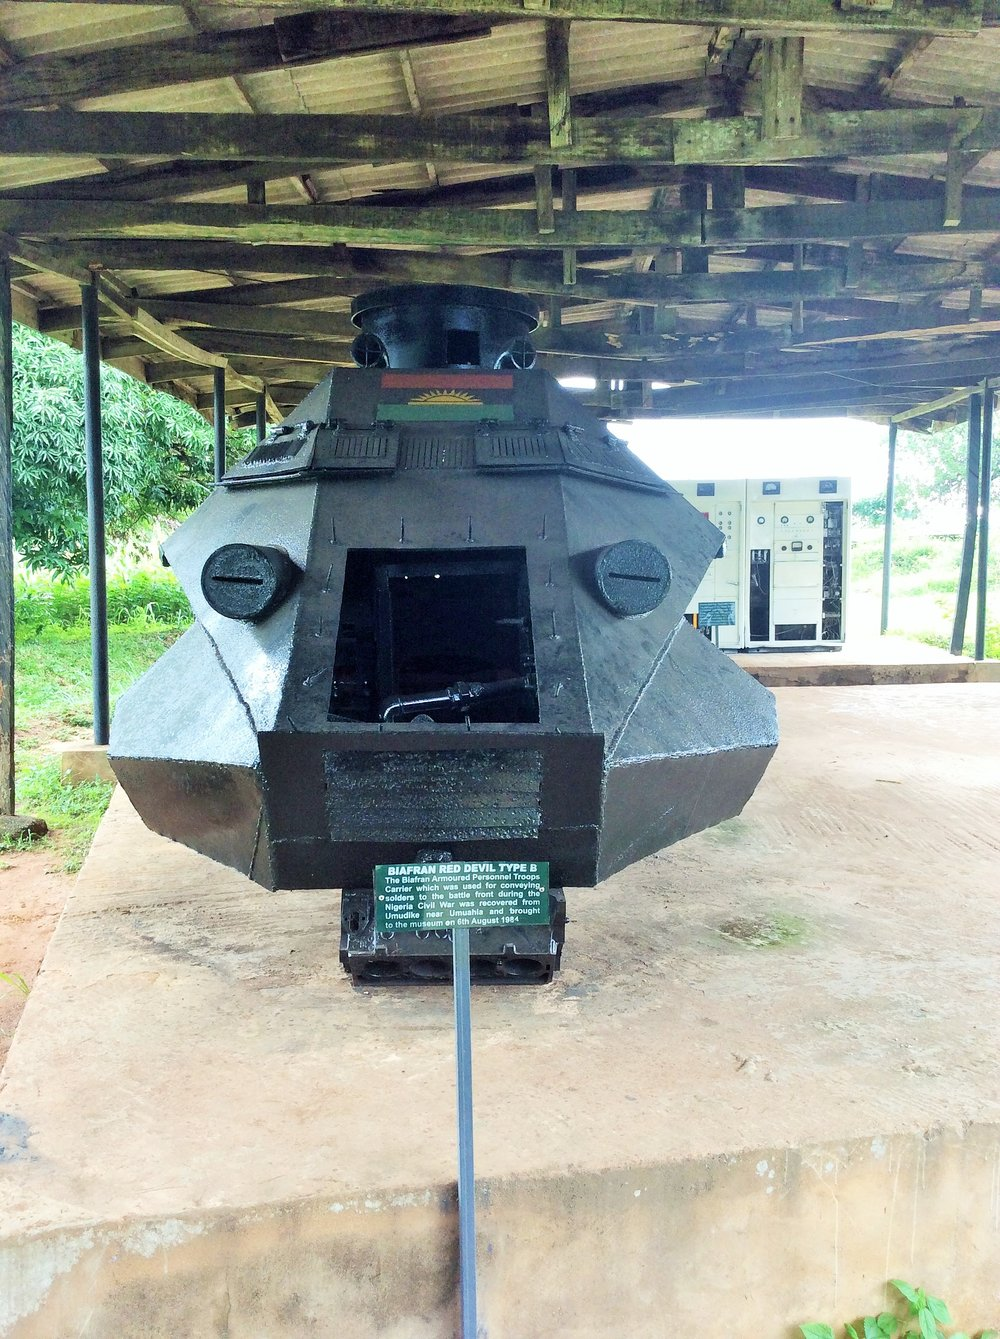 """Locally fabricated weapons with the Biafran map. That's Biafra radio at the back which Ojukwu used in communicating called  shortwave radio """"the Voice of Biafra"""""""